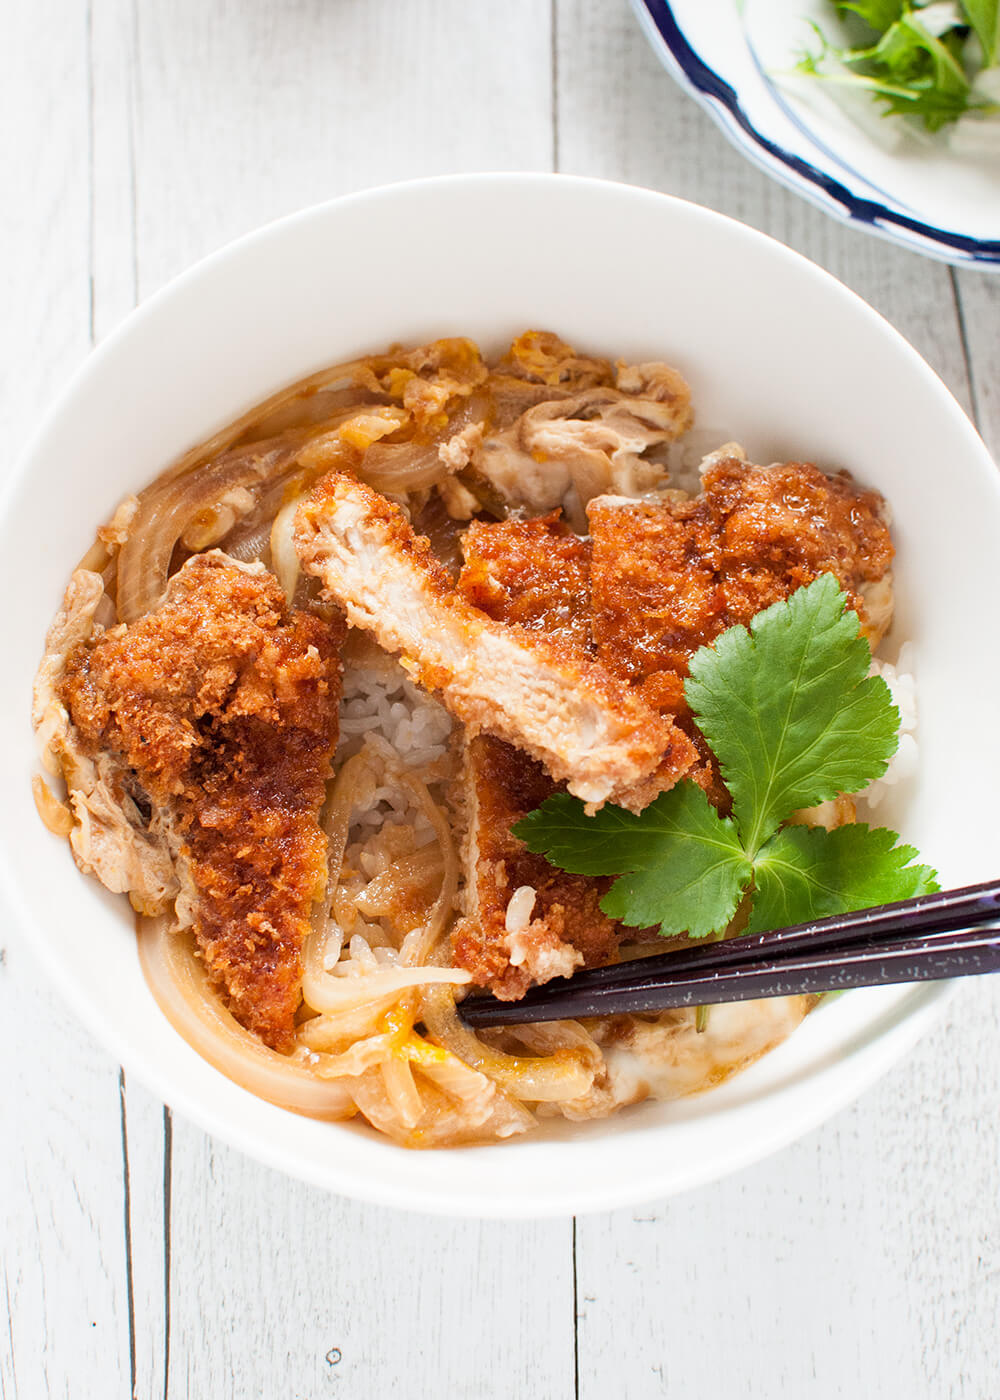 Katsu-don (カツ丼), is a very filling main dish. A bowl of rice topped with tonkatsu (deep fried crumbed pork cutlet), onion and beaten egg, cooked in dashi with sweet soy sauce.